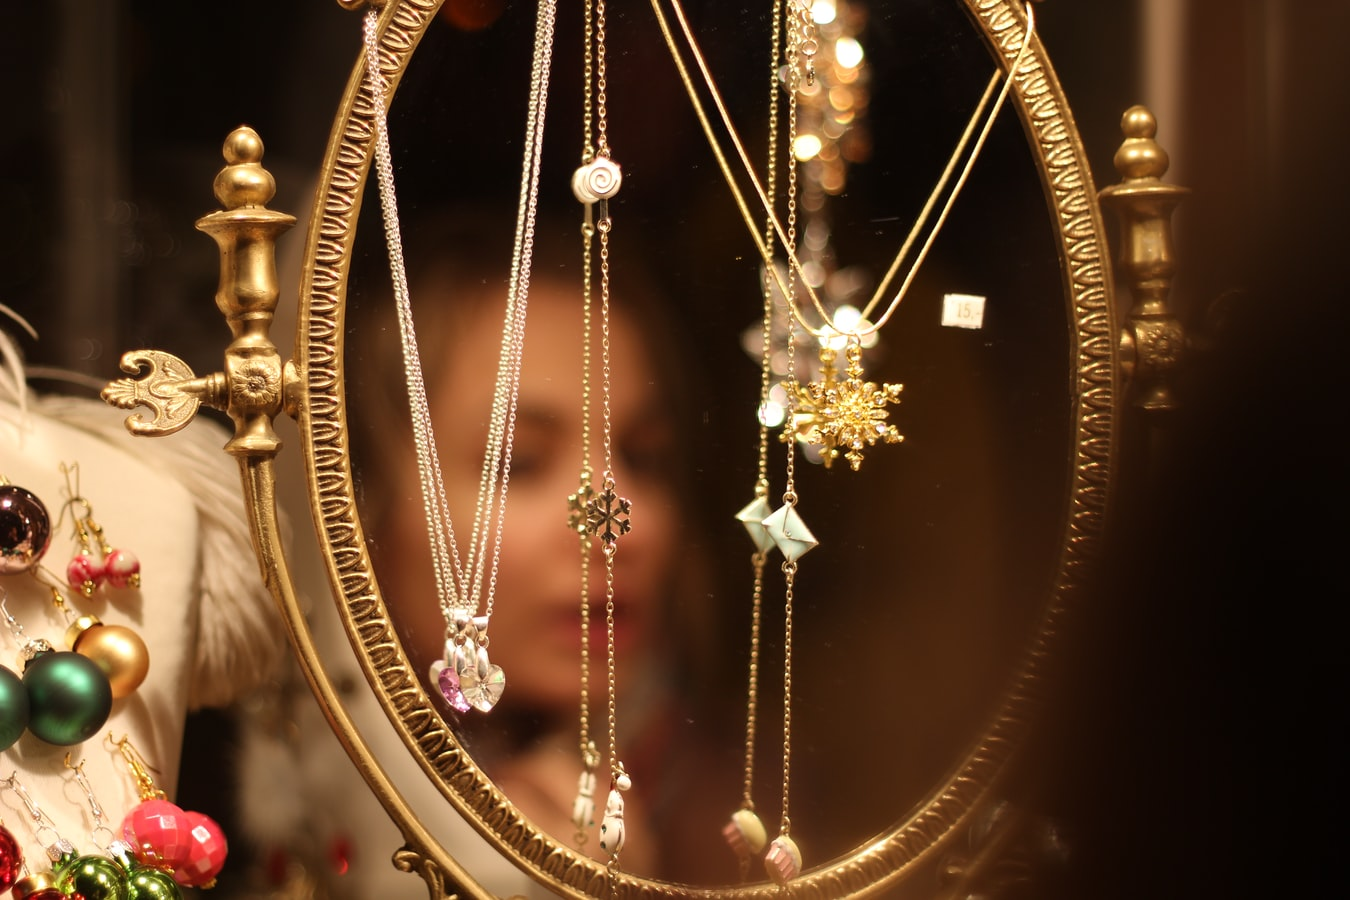 Jewellery. A number of necklaces hanging in front of a mirror. An out of focus womans face can be seen in the reflection.